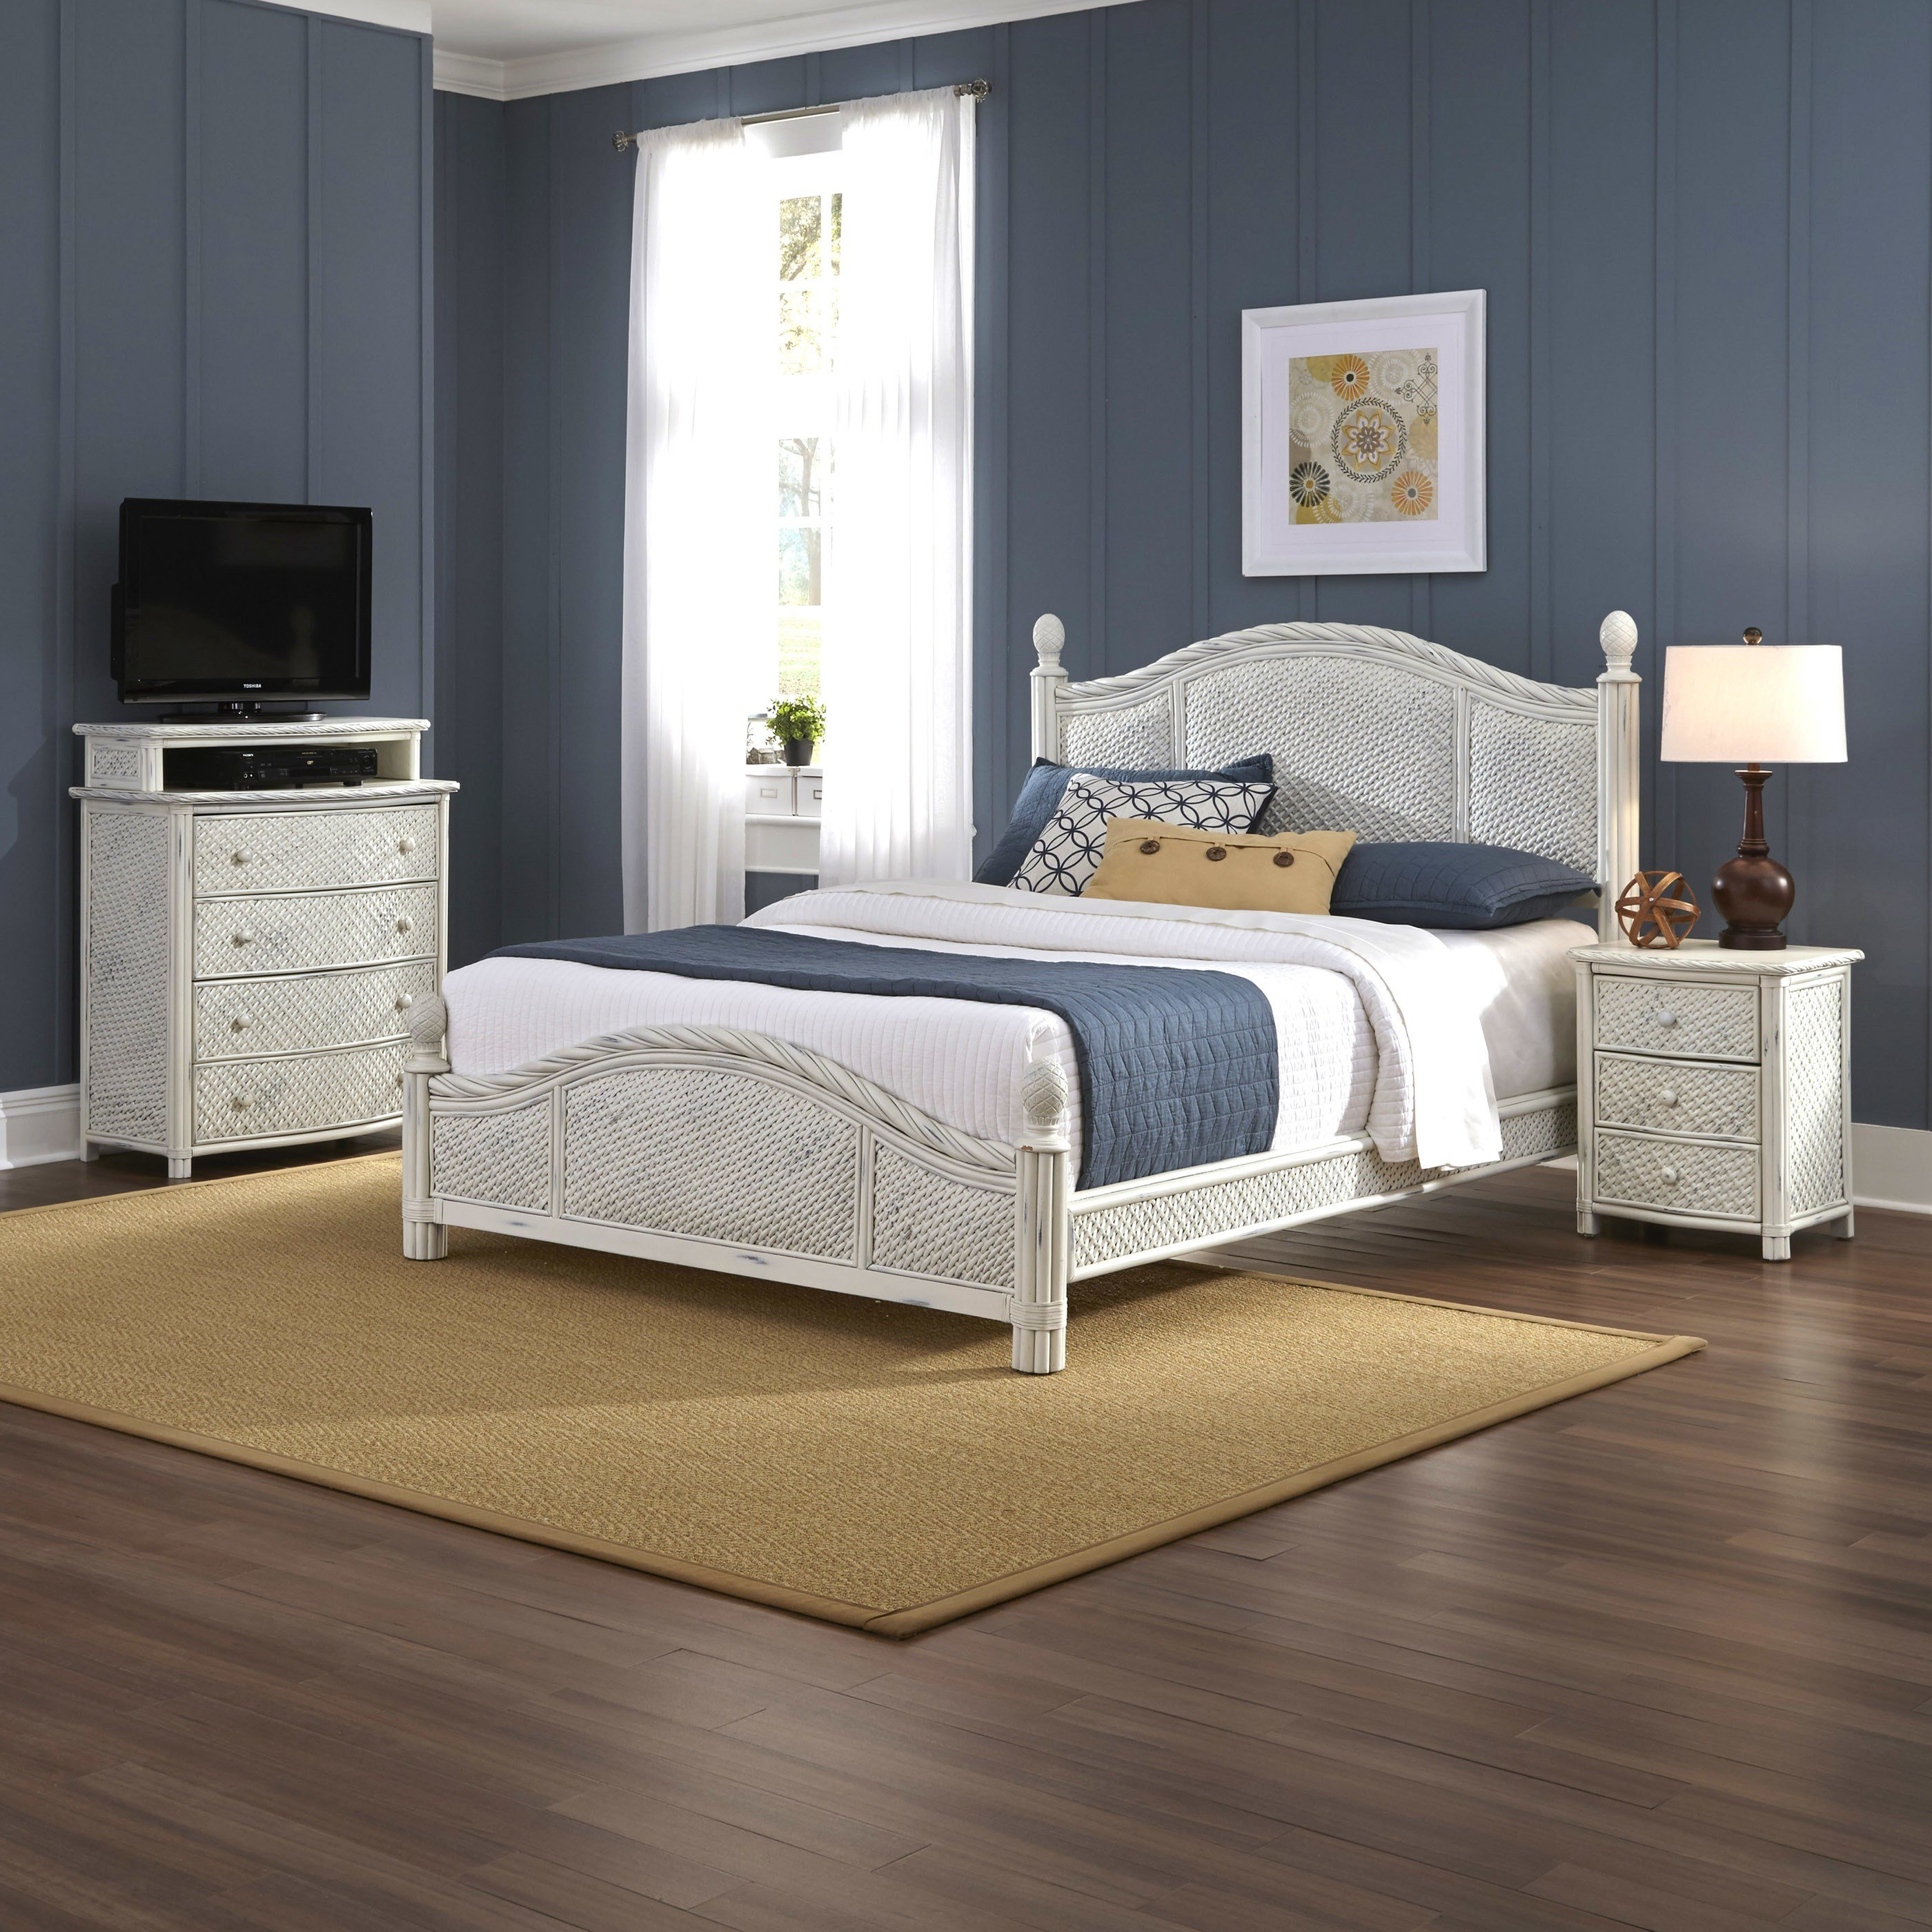 Best Bay Isle Home Oliver Panel 3 Piece Bedroom Set Reviews With Pictures